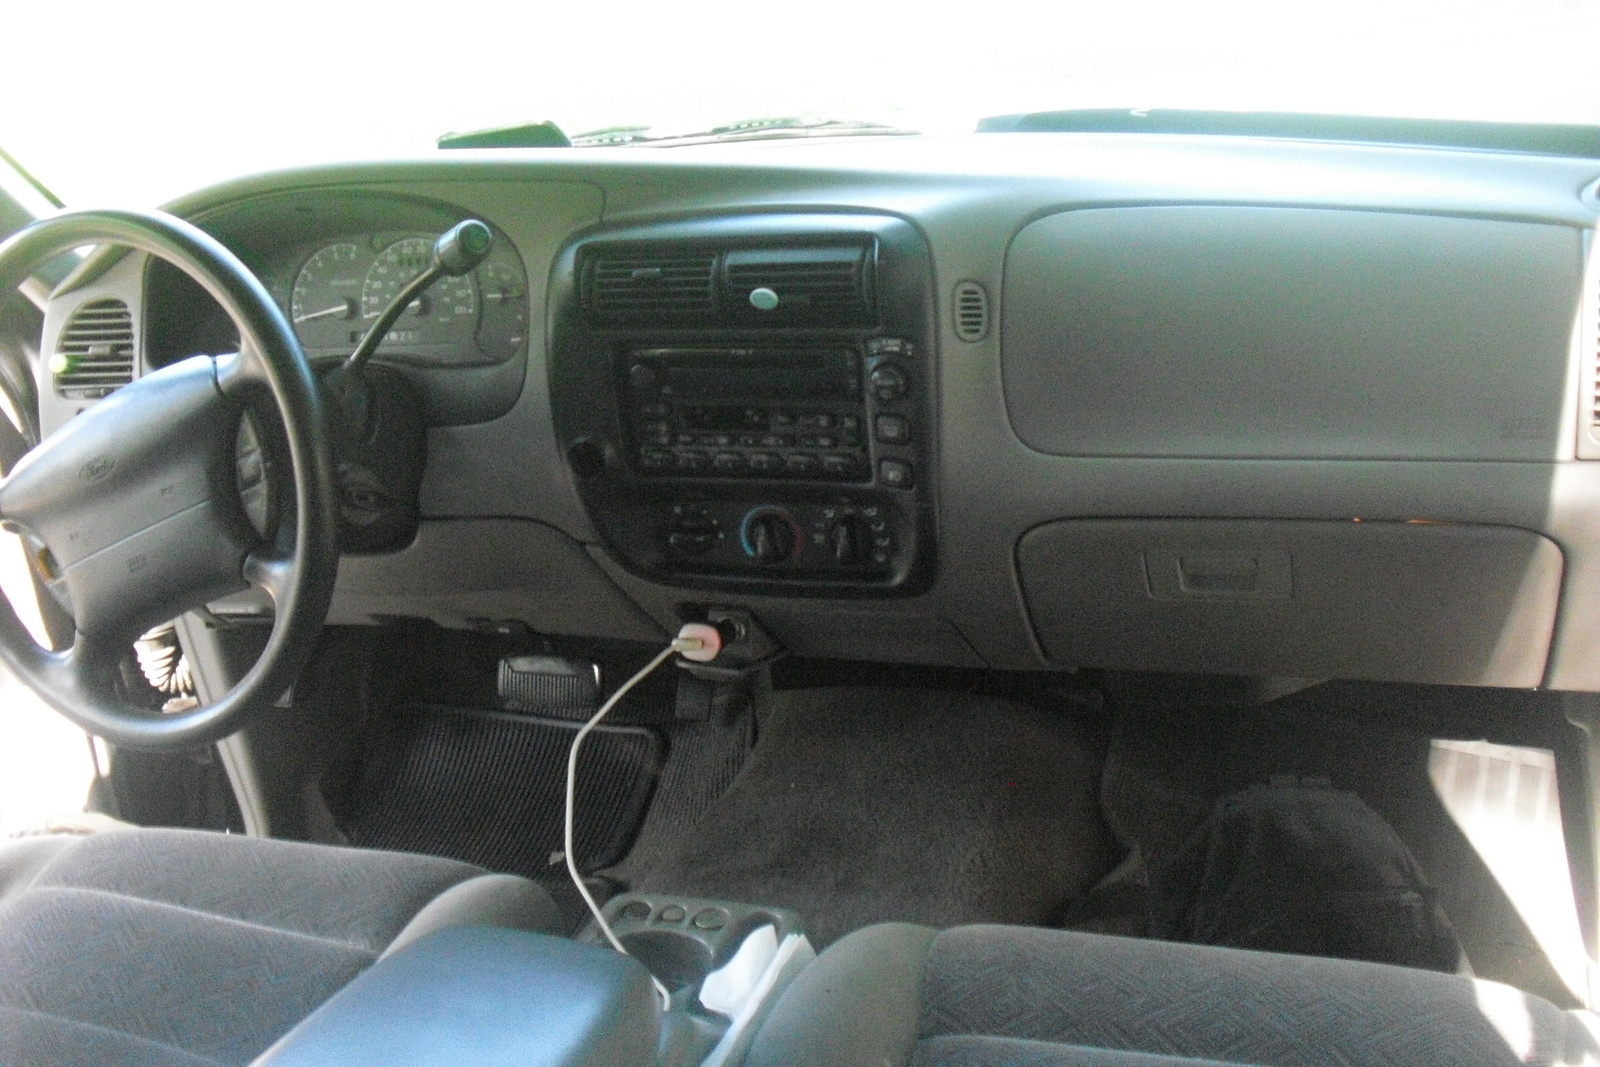 2000 Ford Explorer  Interior Pictures  CarGurus